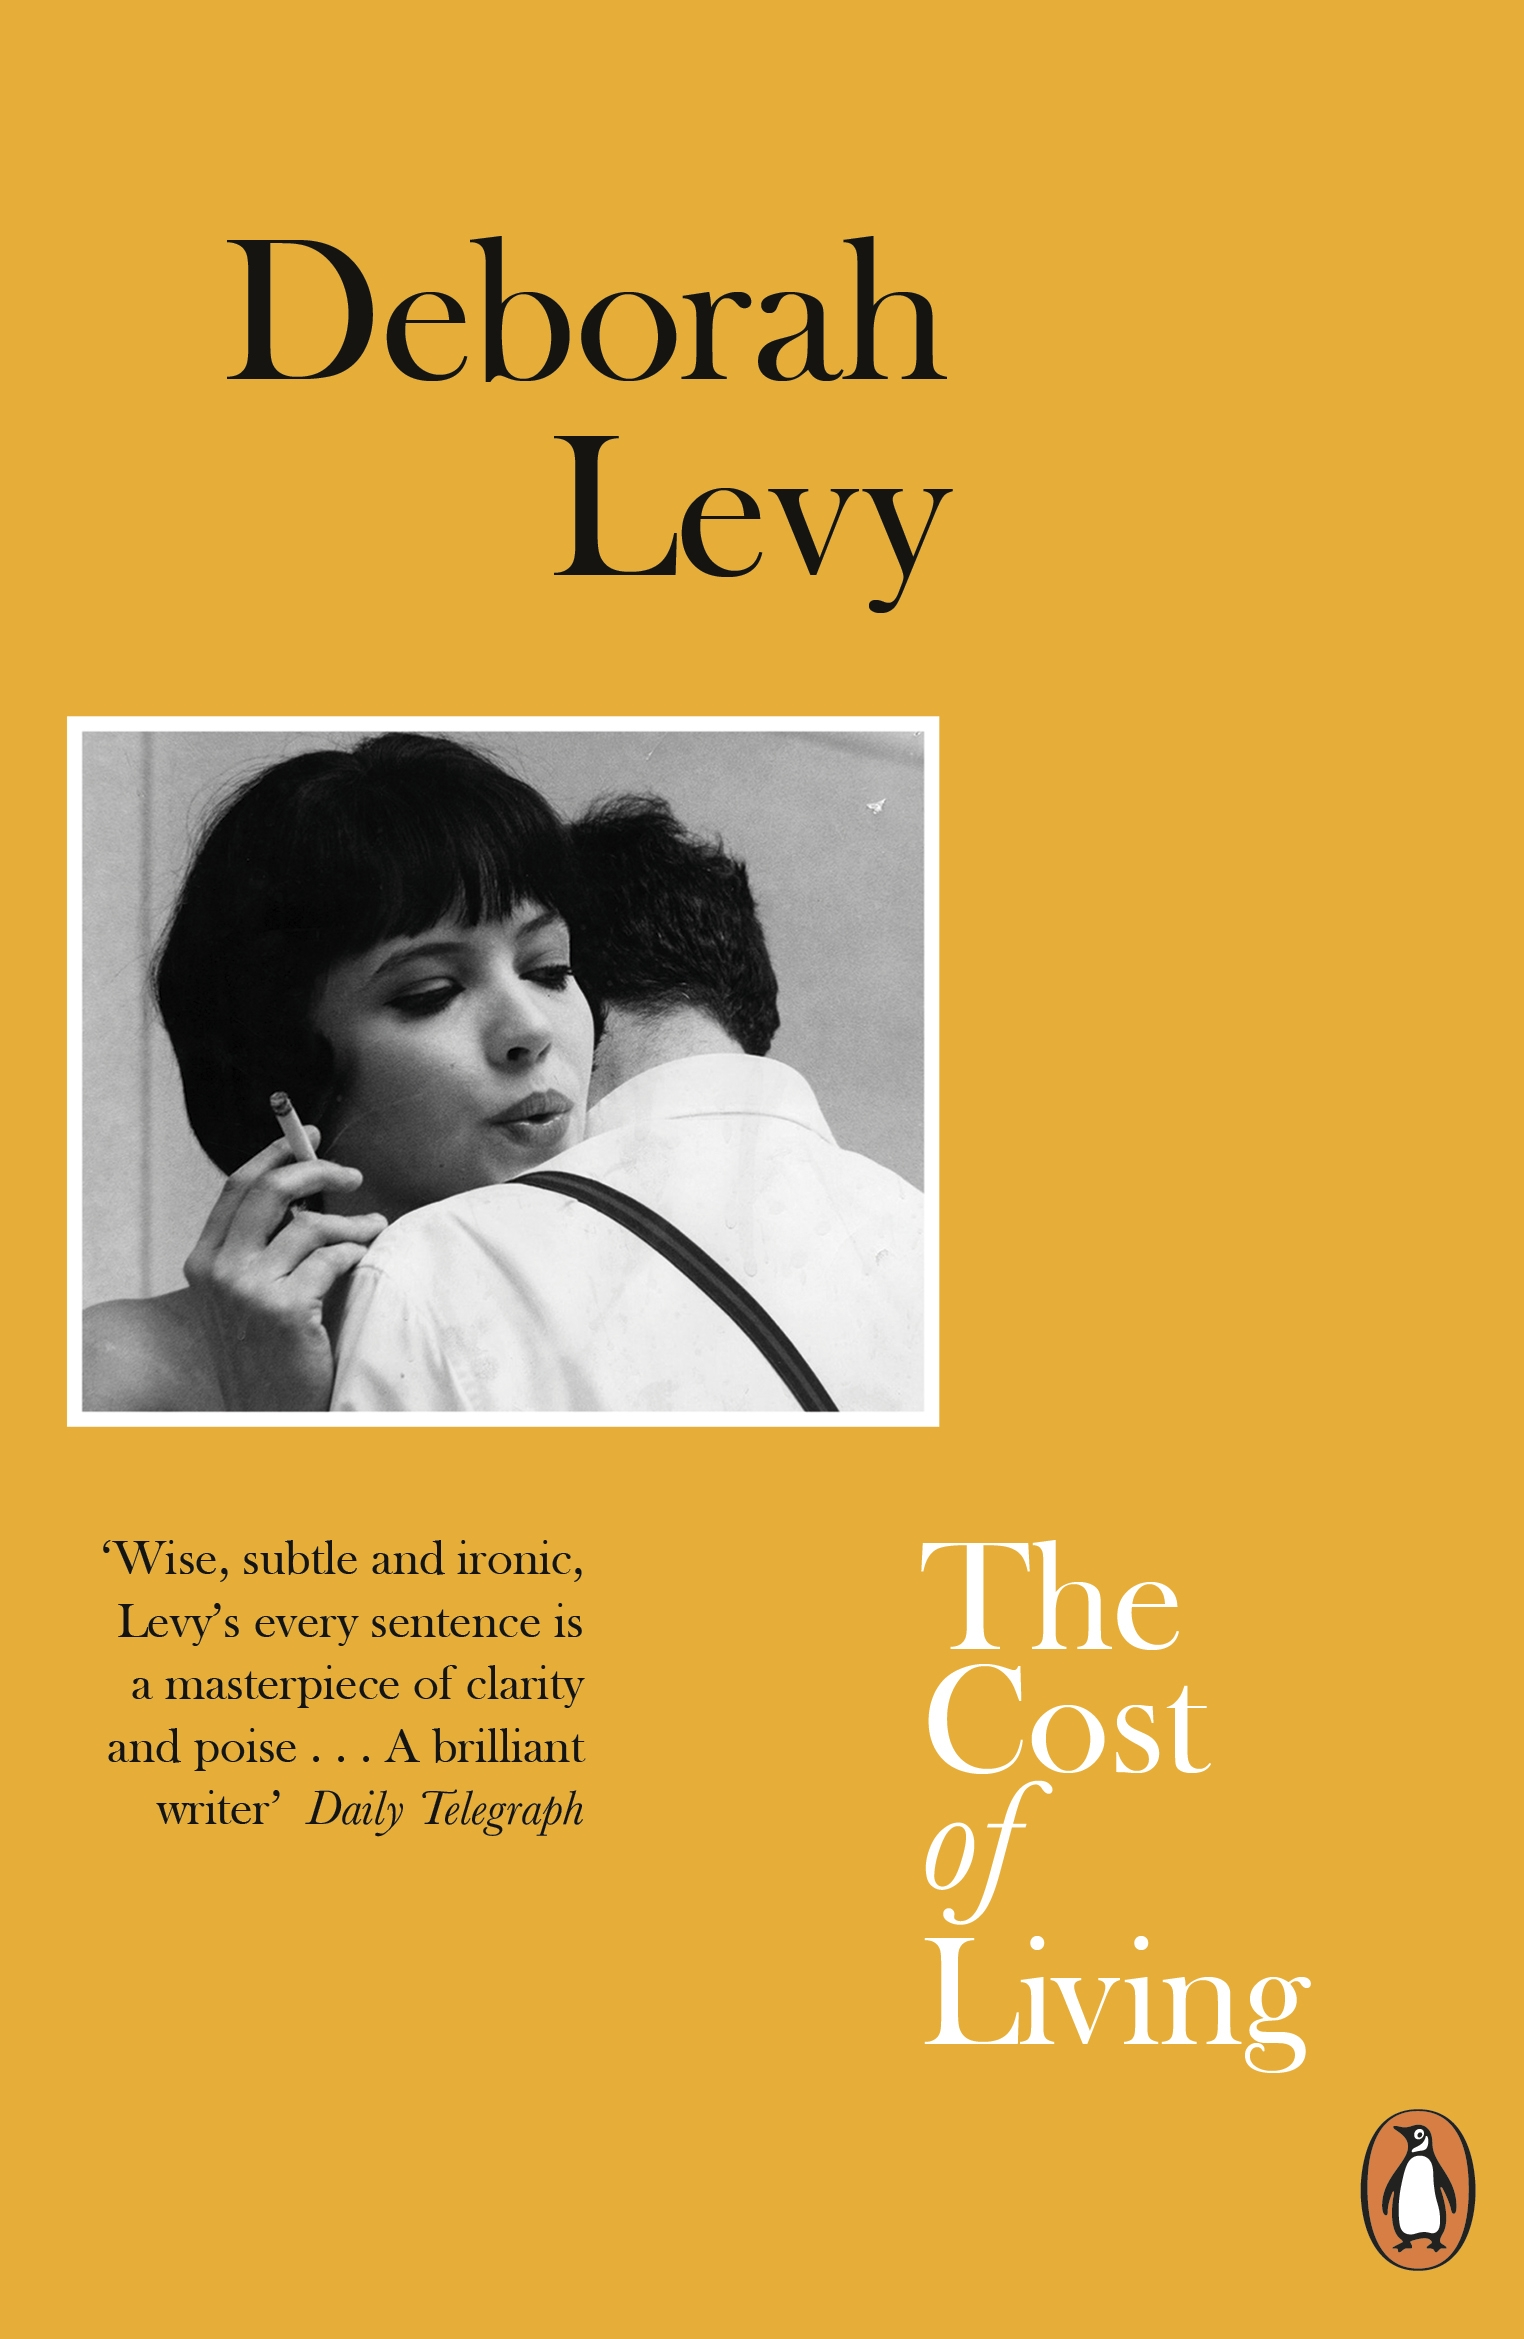 The Cost of Living book cover art